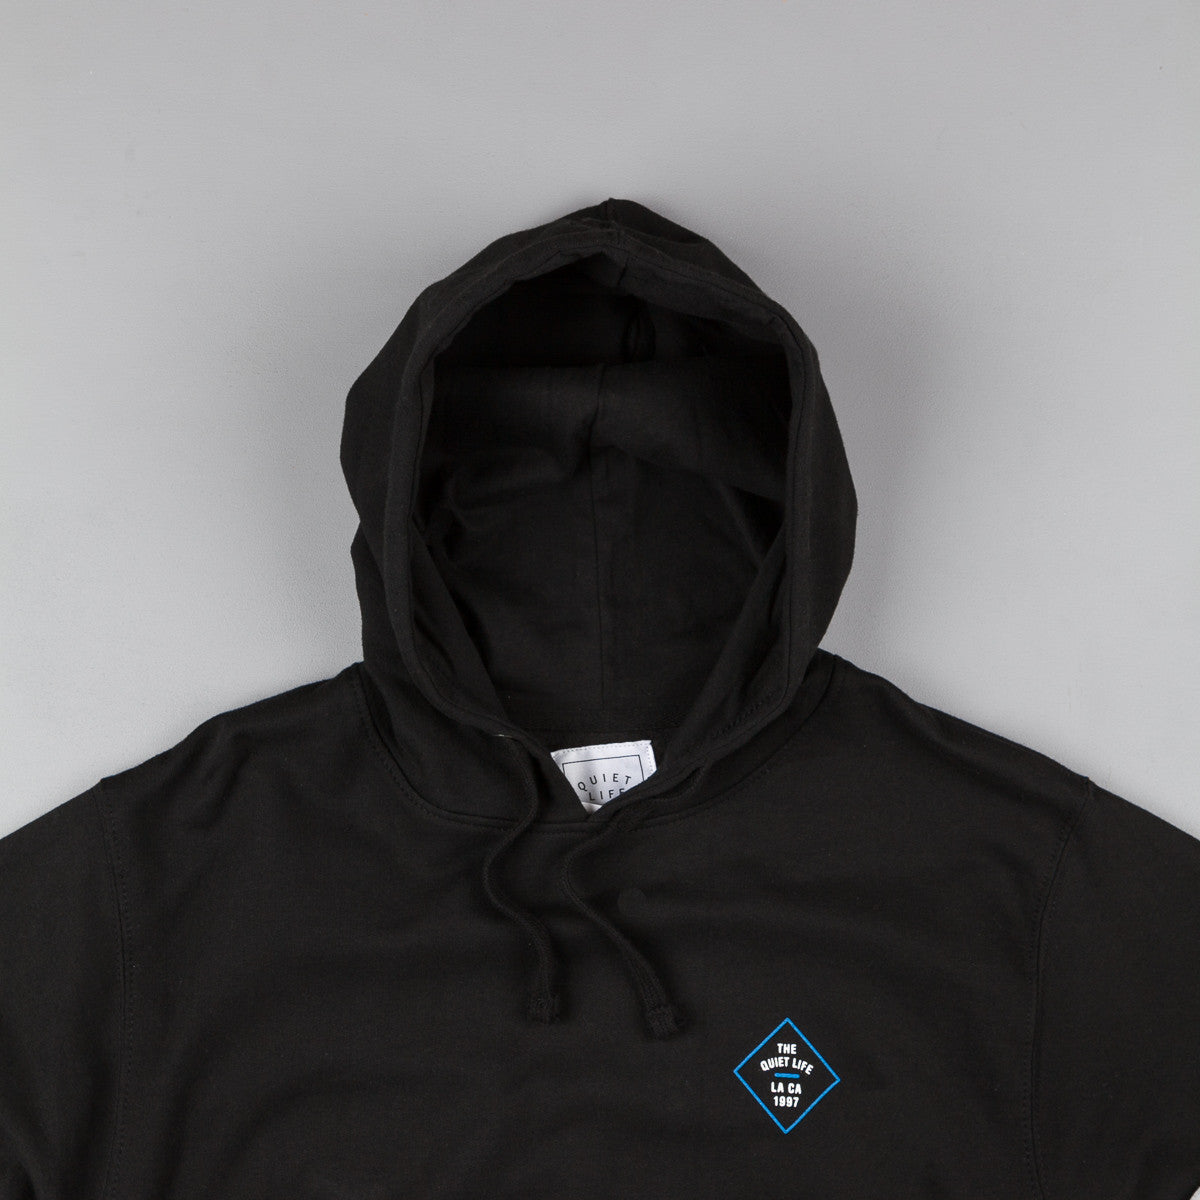 The Quiet Life Traveler Hooded Sweatshirt - Black